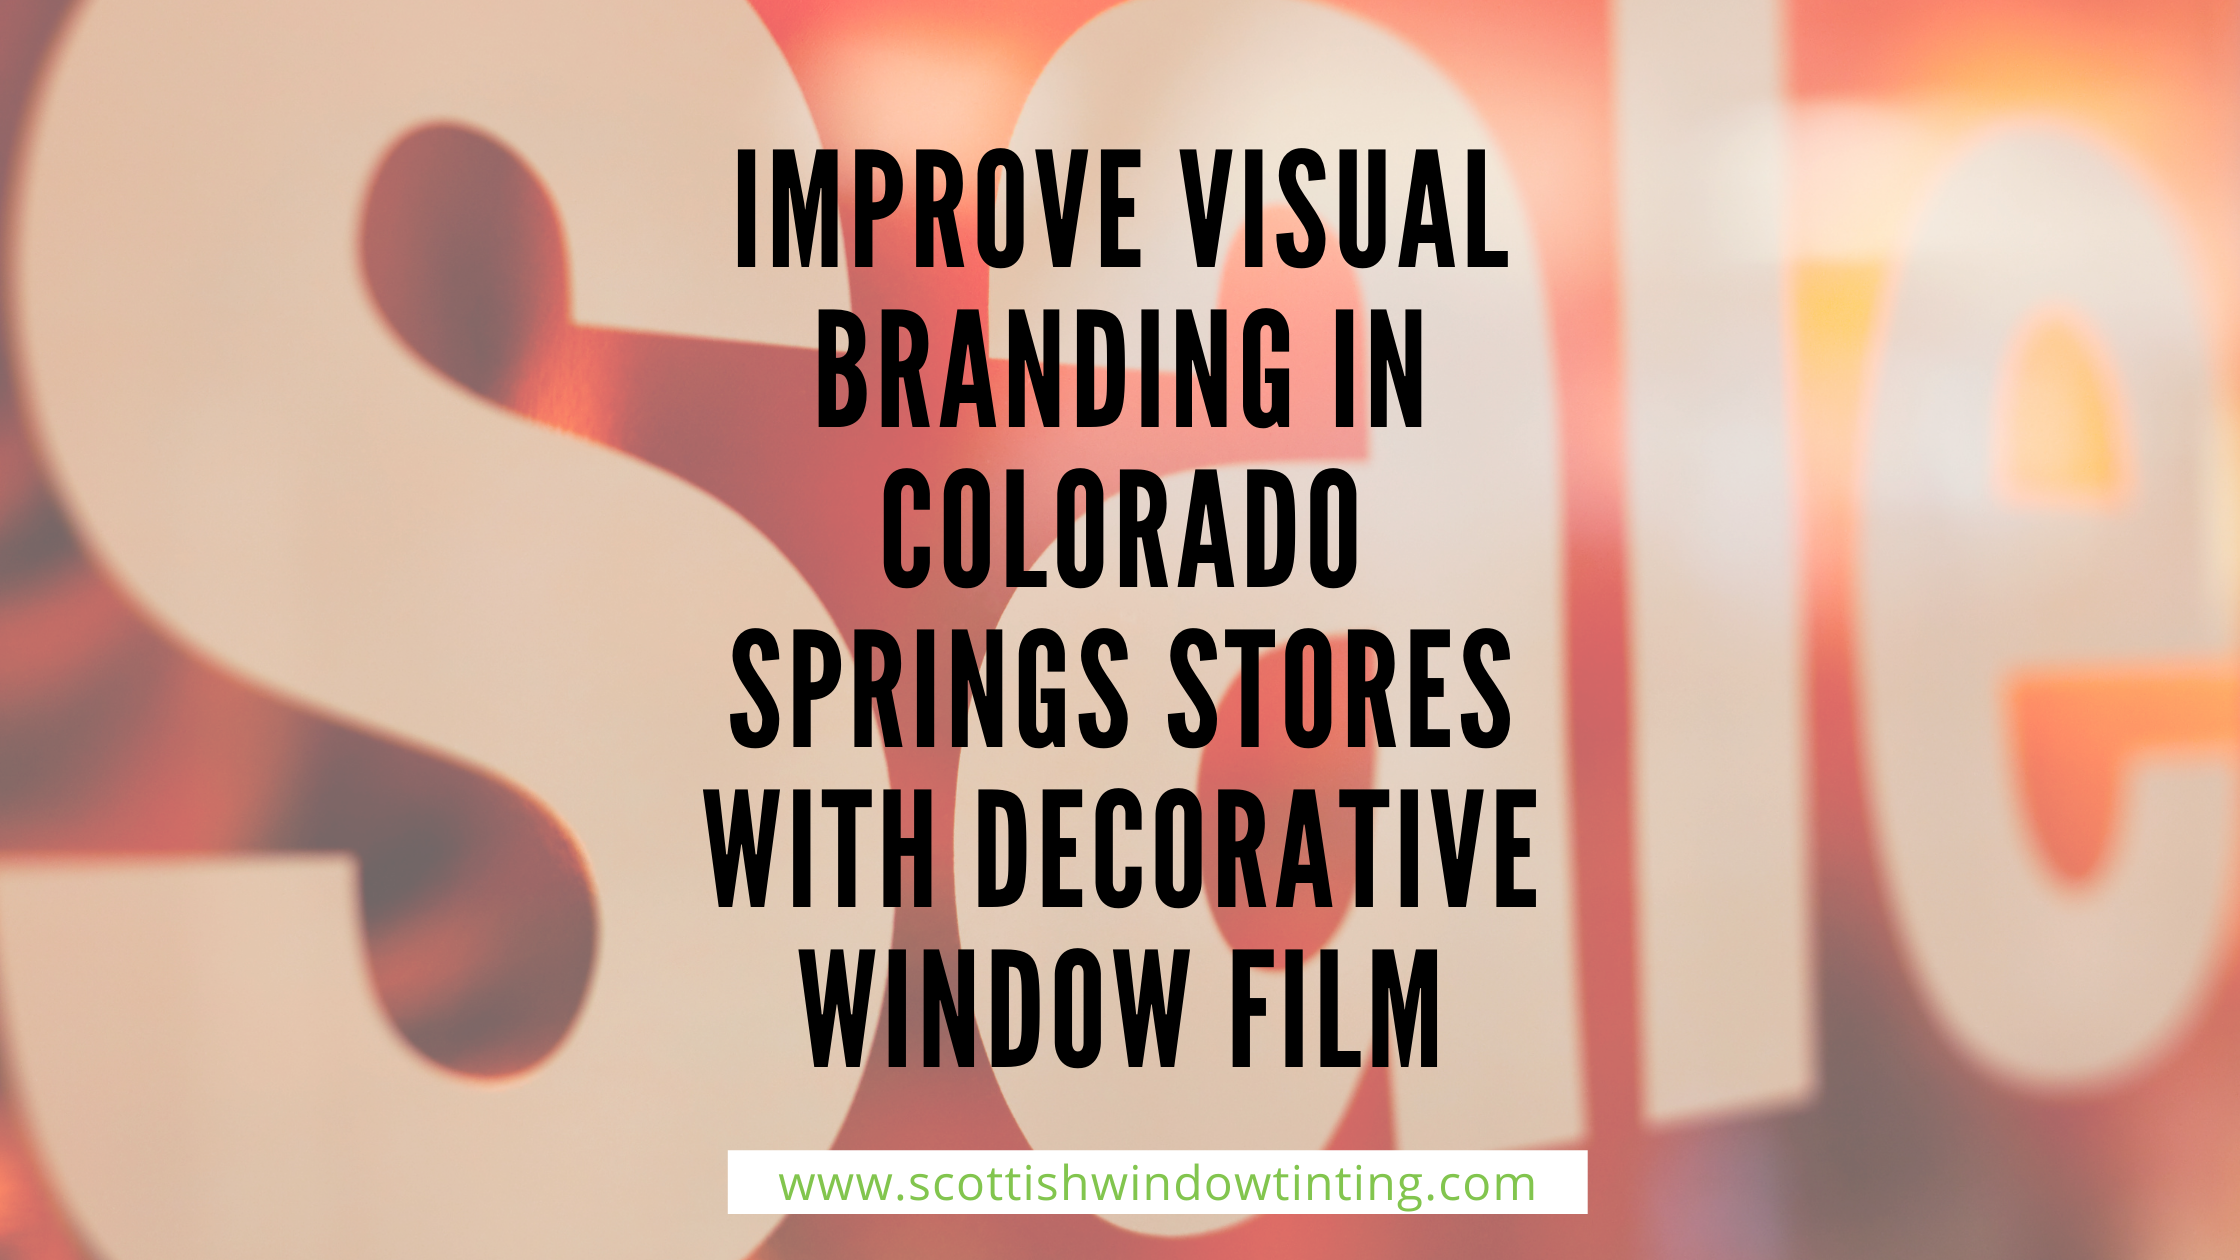 How to Improve Visual Branding in Colorado Springs Stores with Decorative Window Film